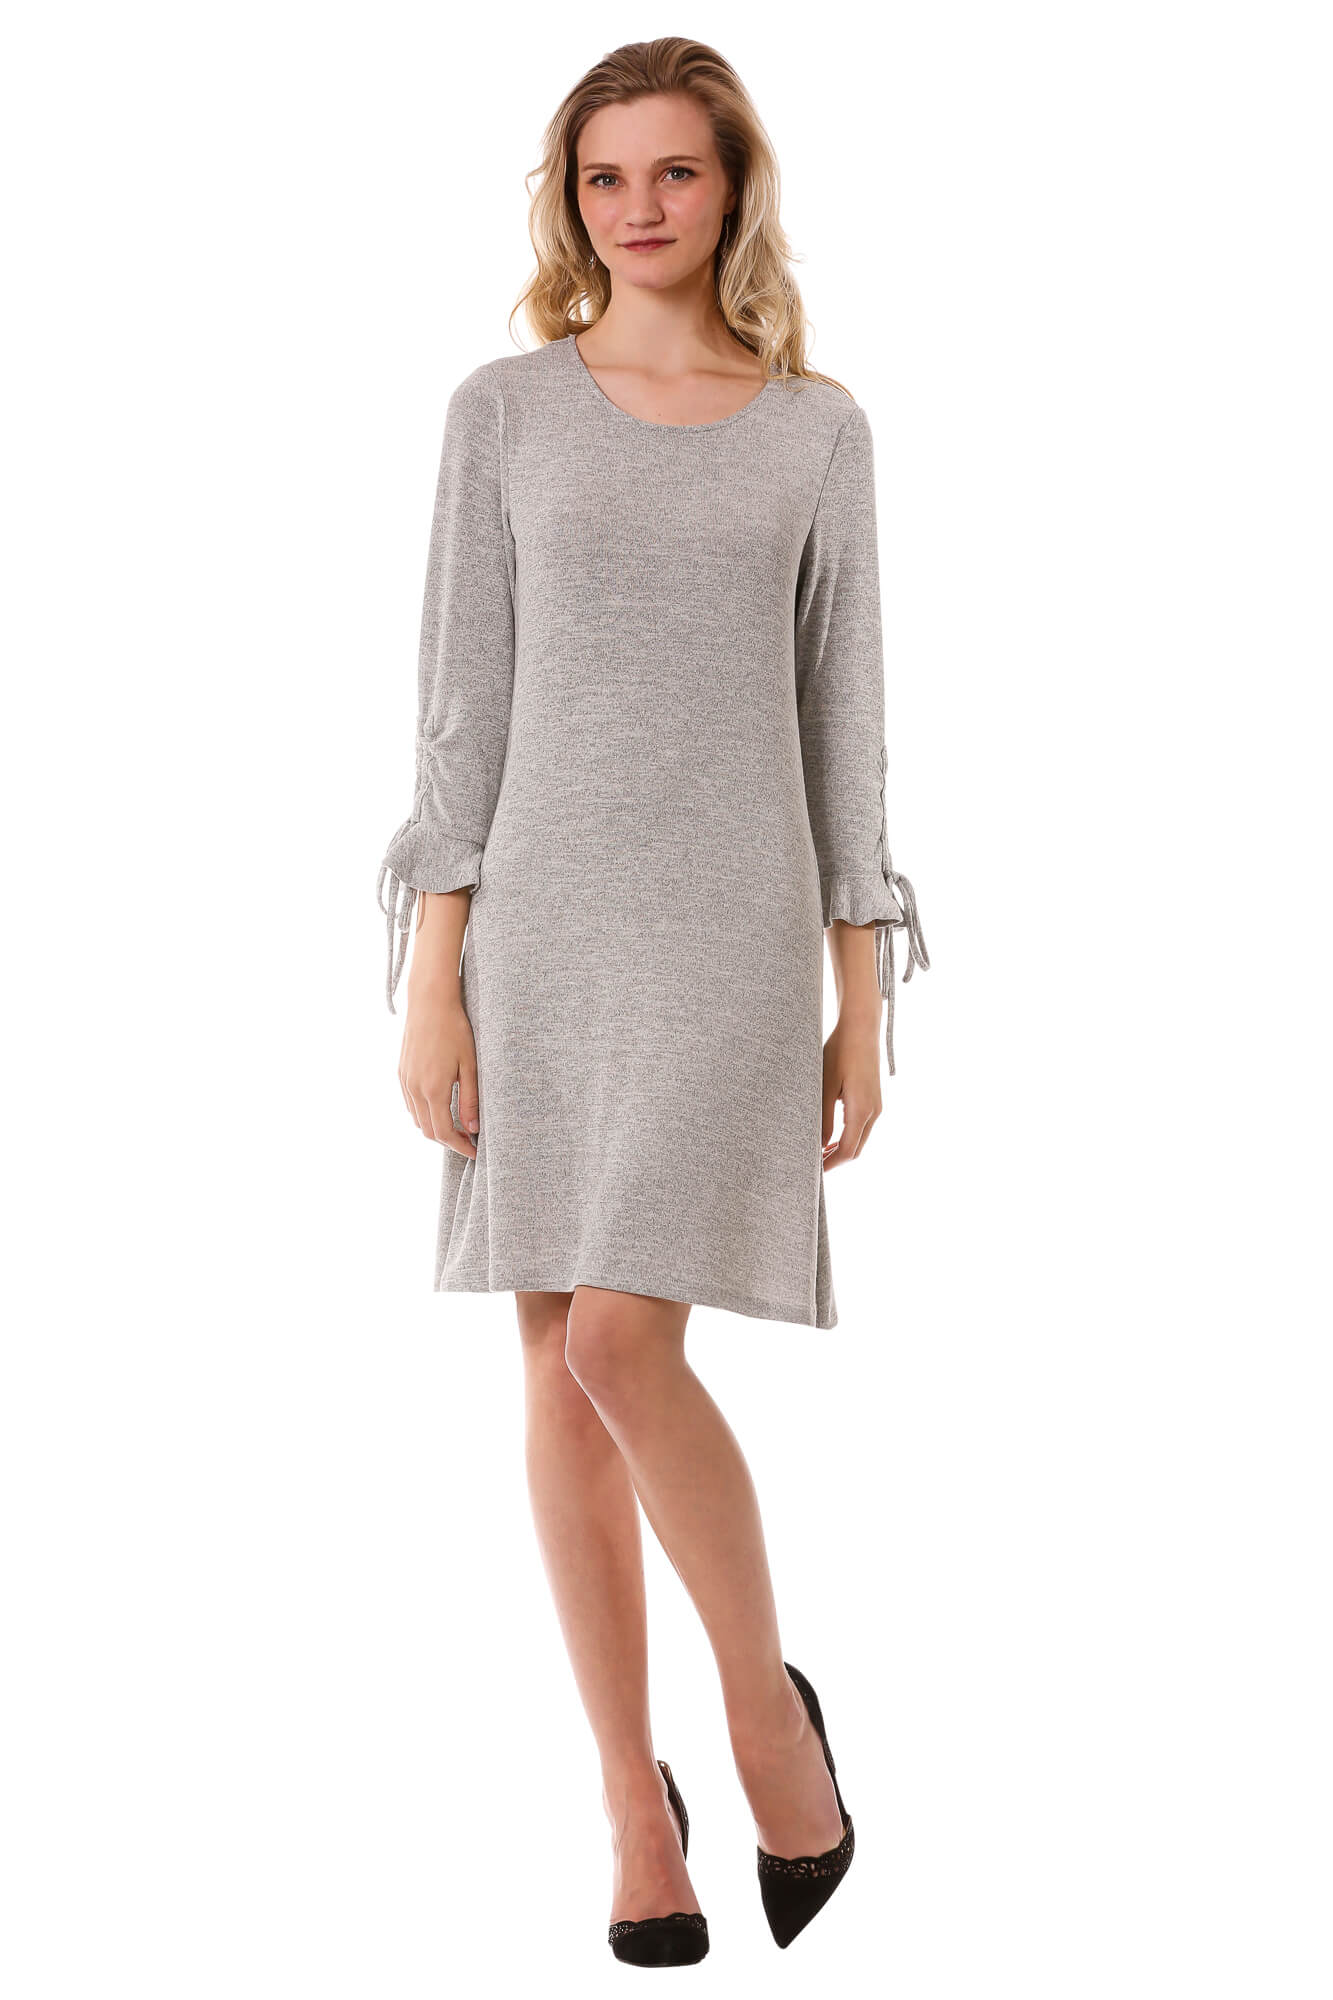 Women's Light Grey Ruffle Bell Sleeve Sweater Dress | 3/4 Sleeve Dress | Neesha